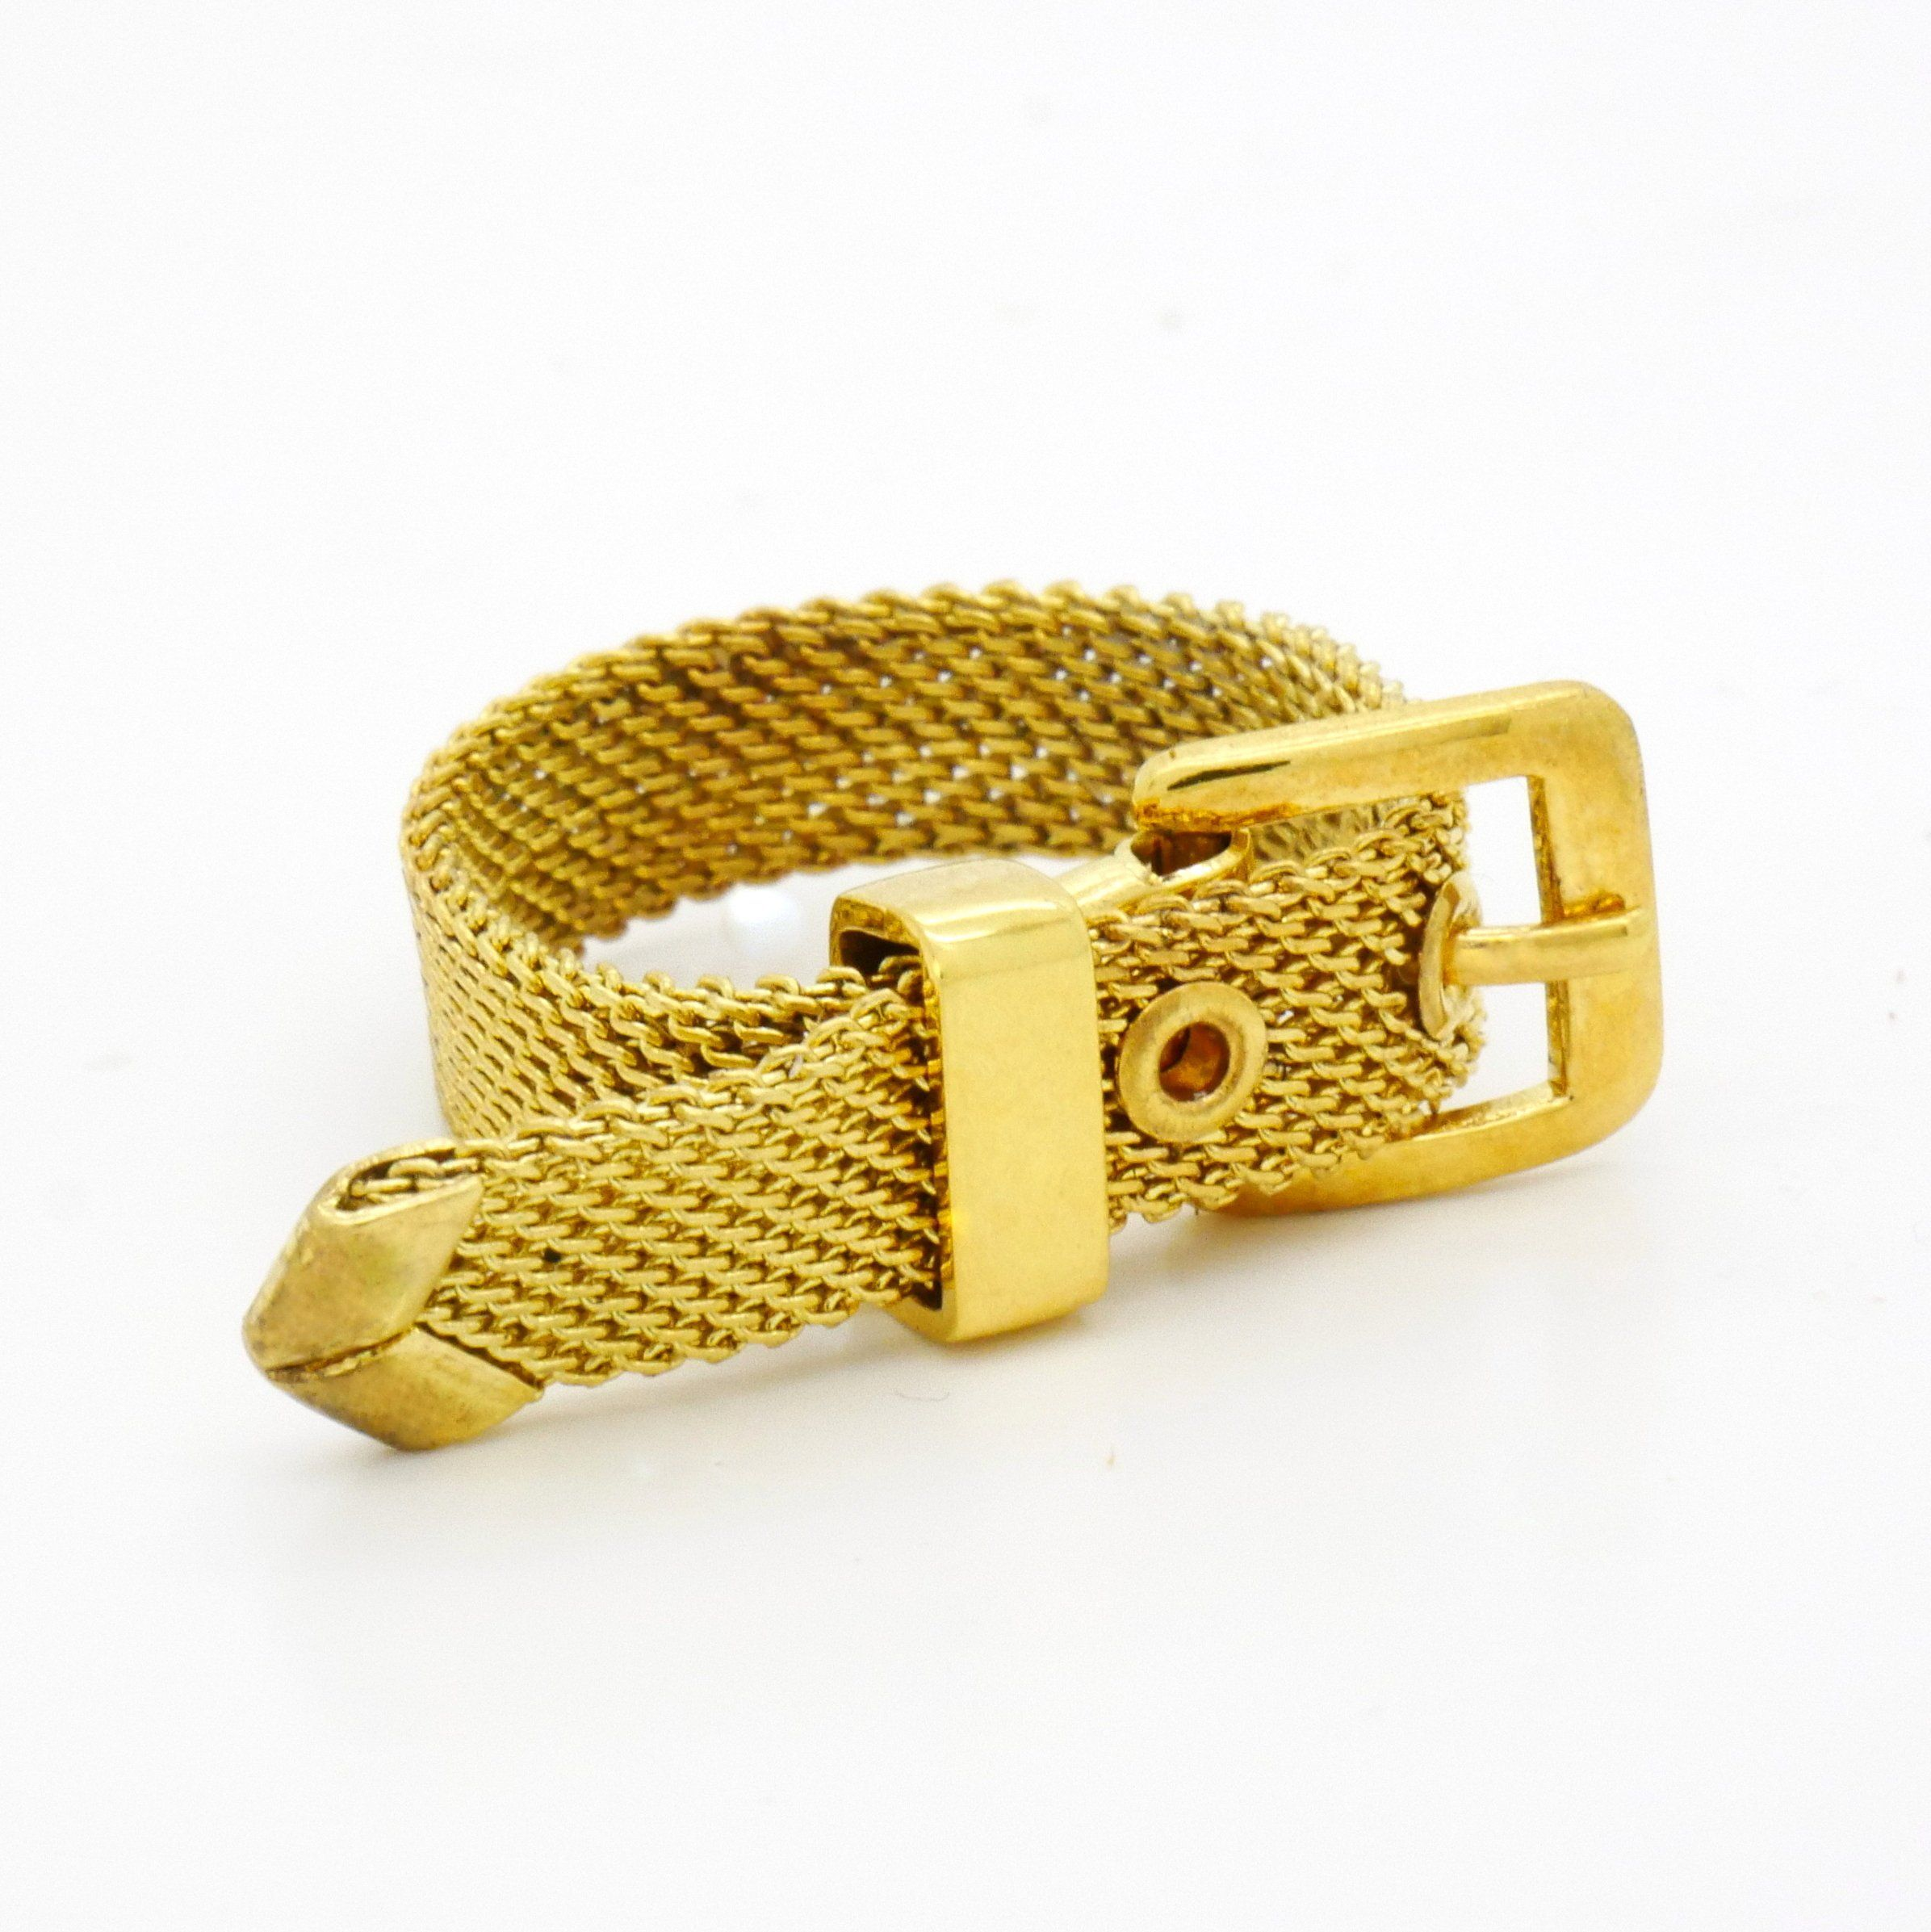 Antique Buckle Ring Size 7.50, Golden Tone Brass Braided